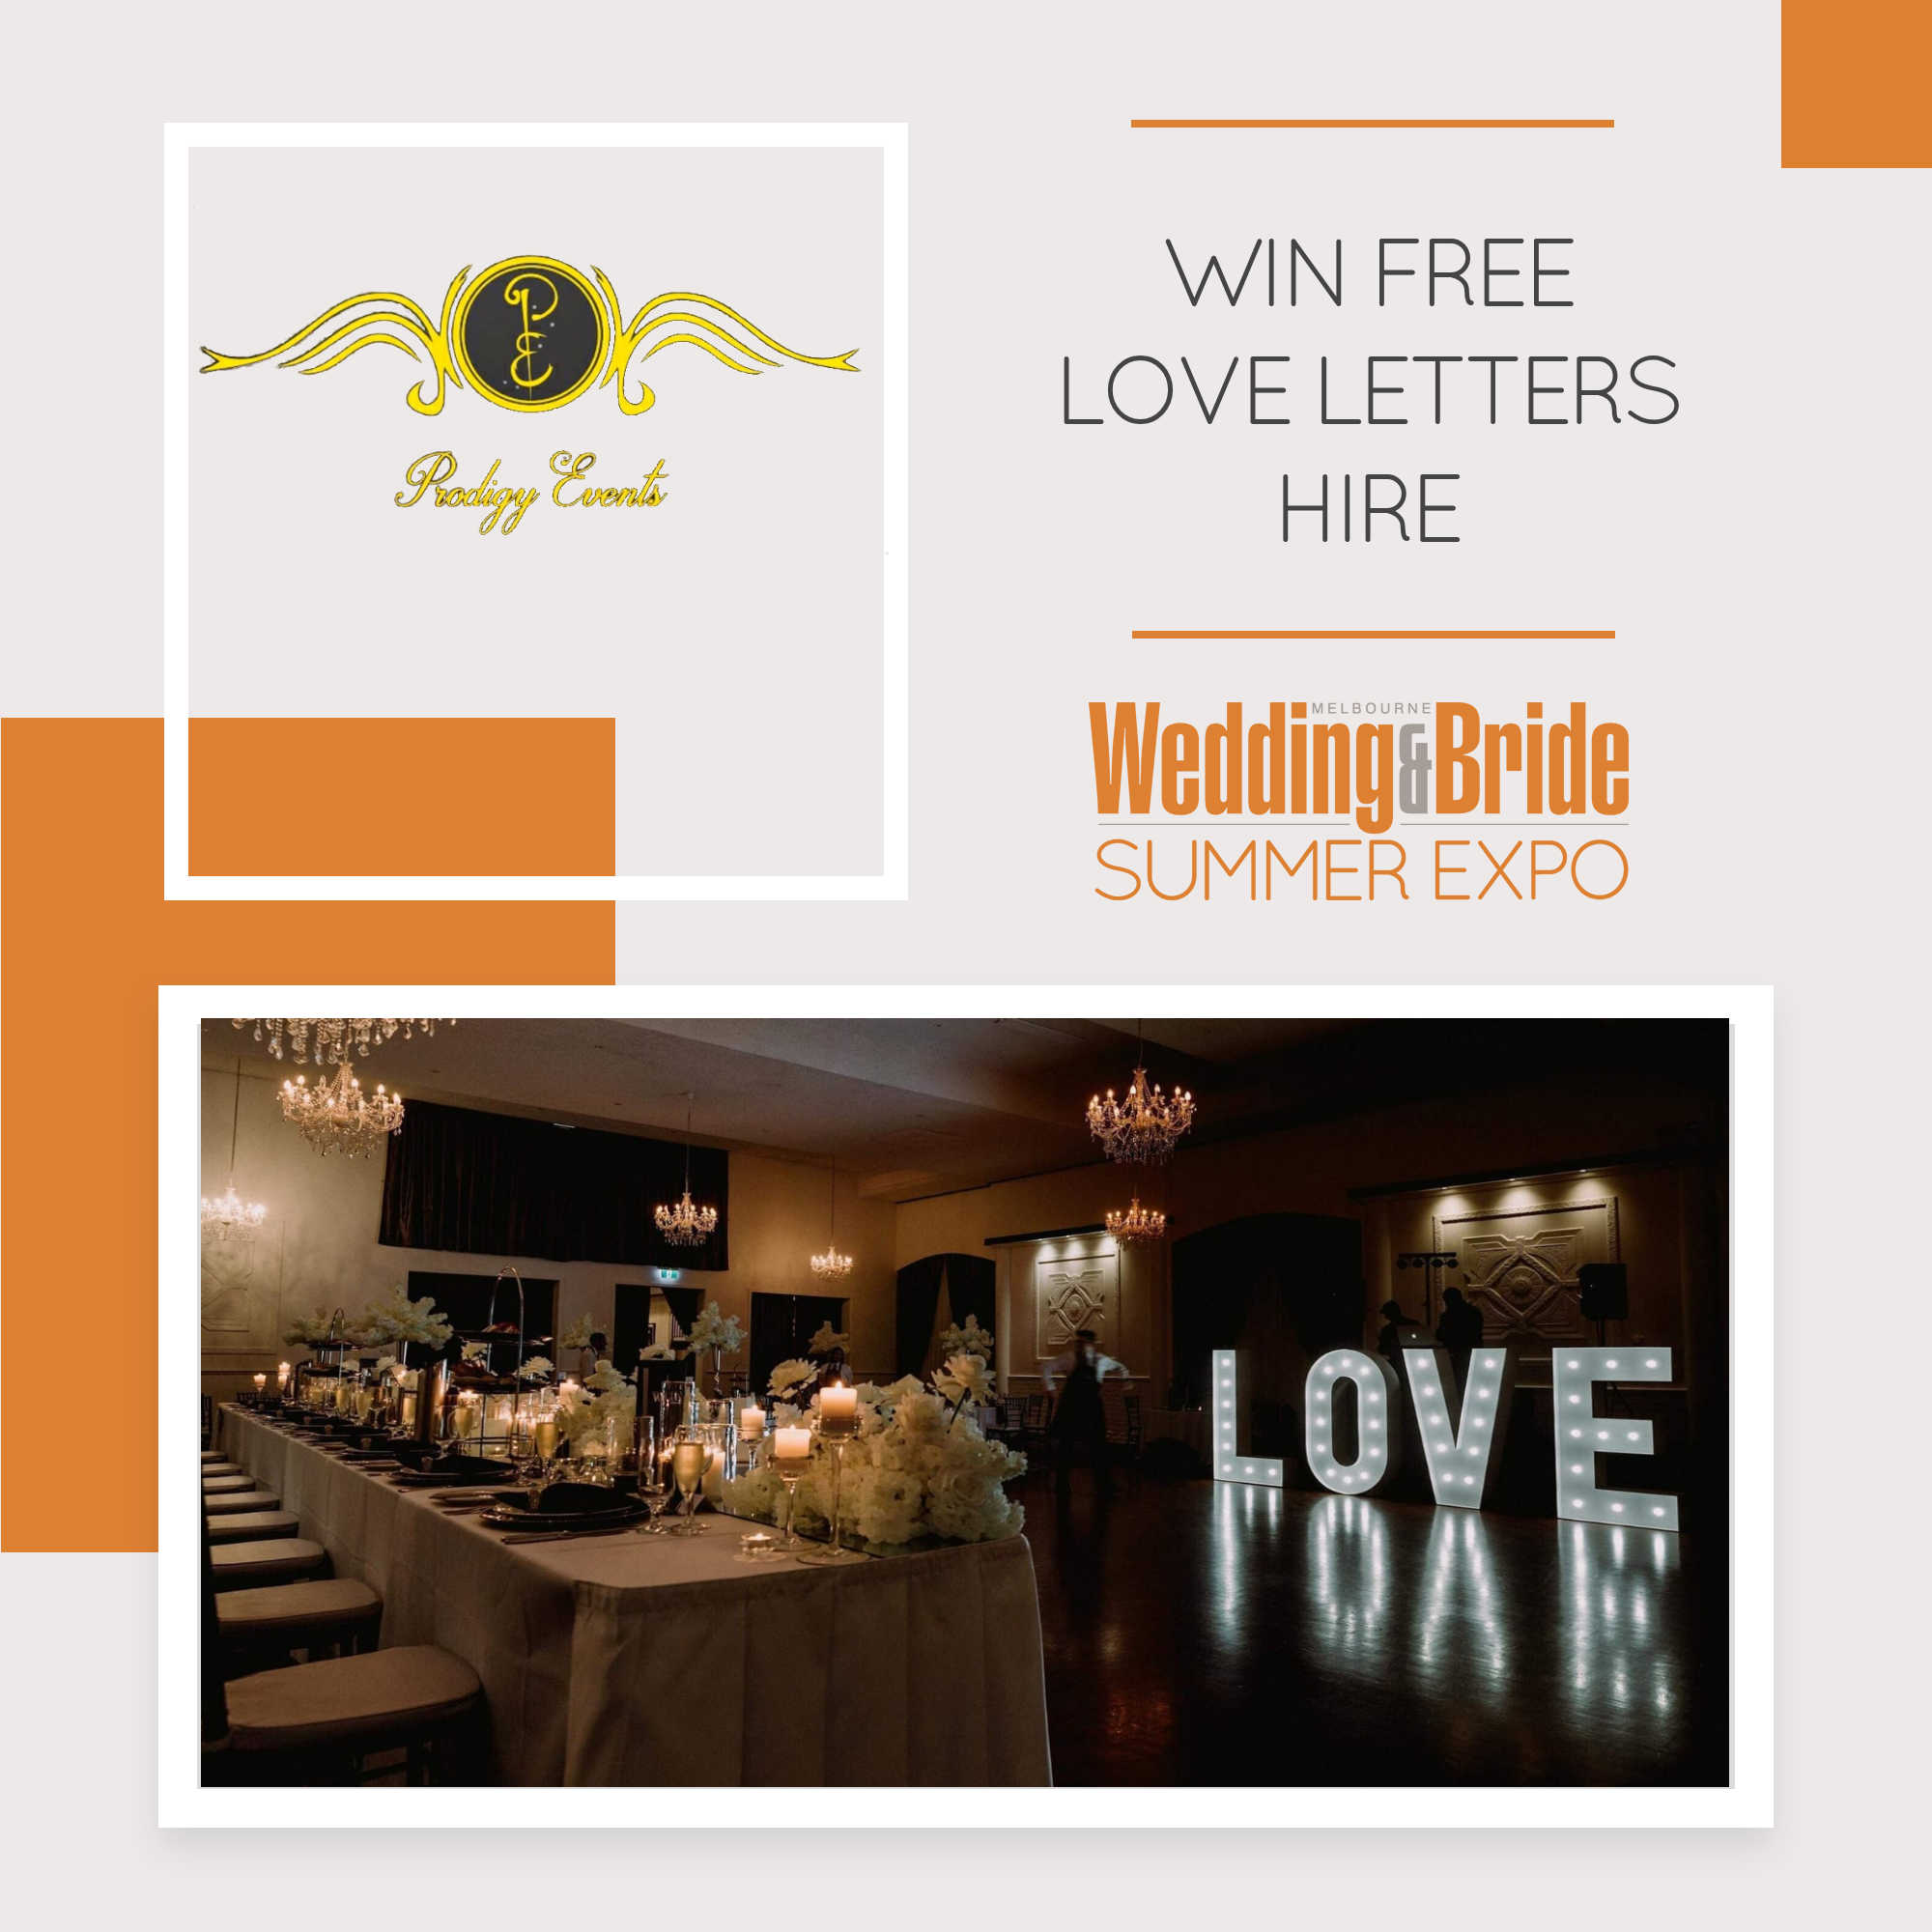 Prodigy Events - Melbourne Bridal Expo 2020